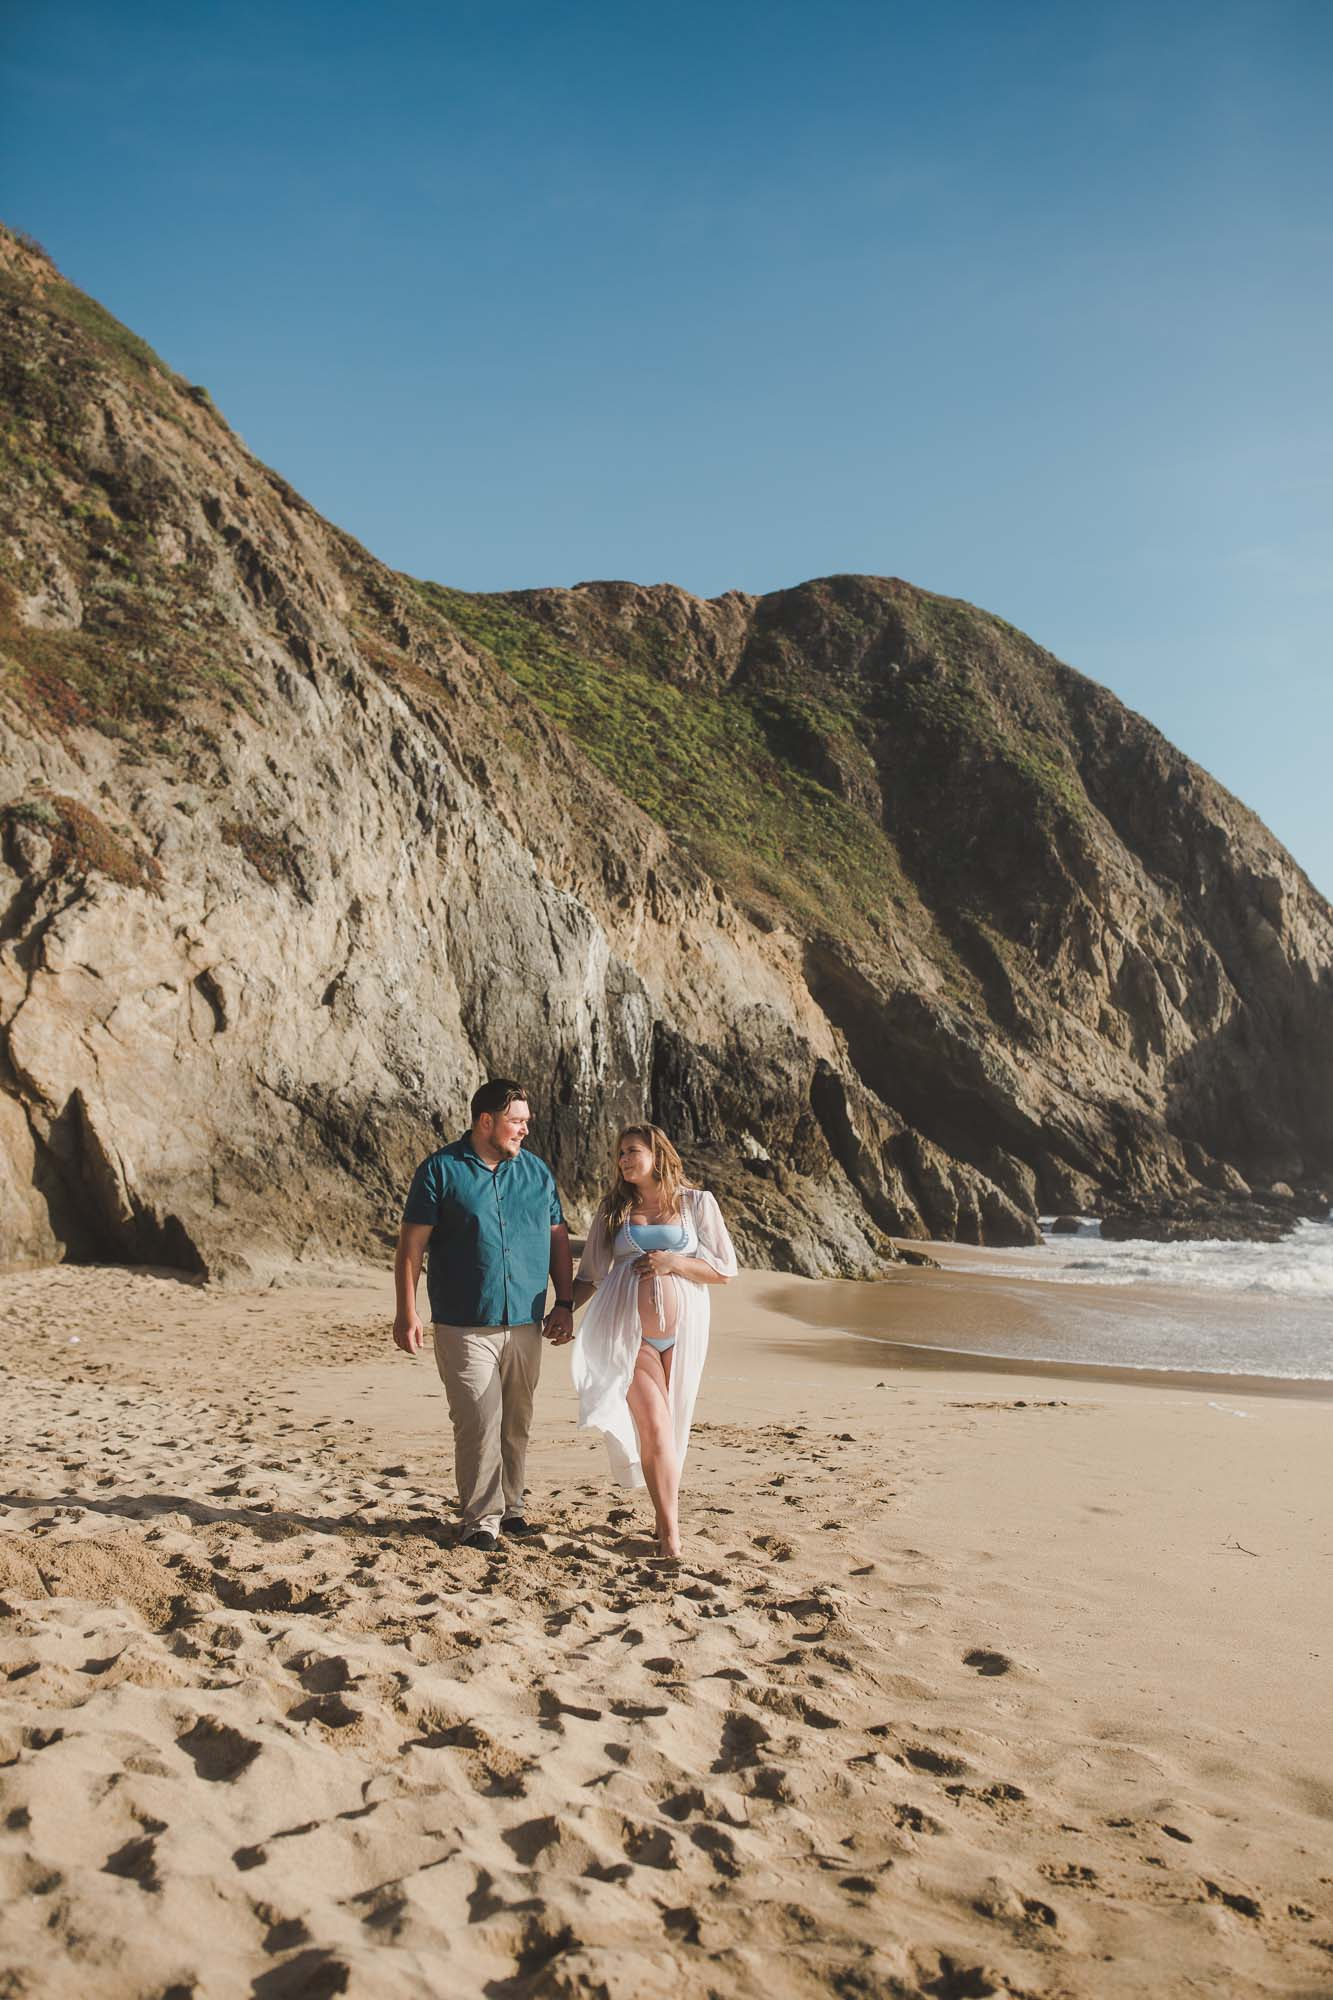 pacifica_maternity_session_california_family_photographer_00012.jpg